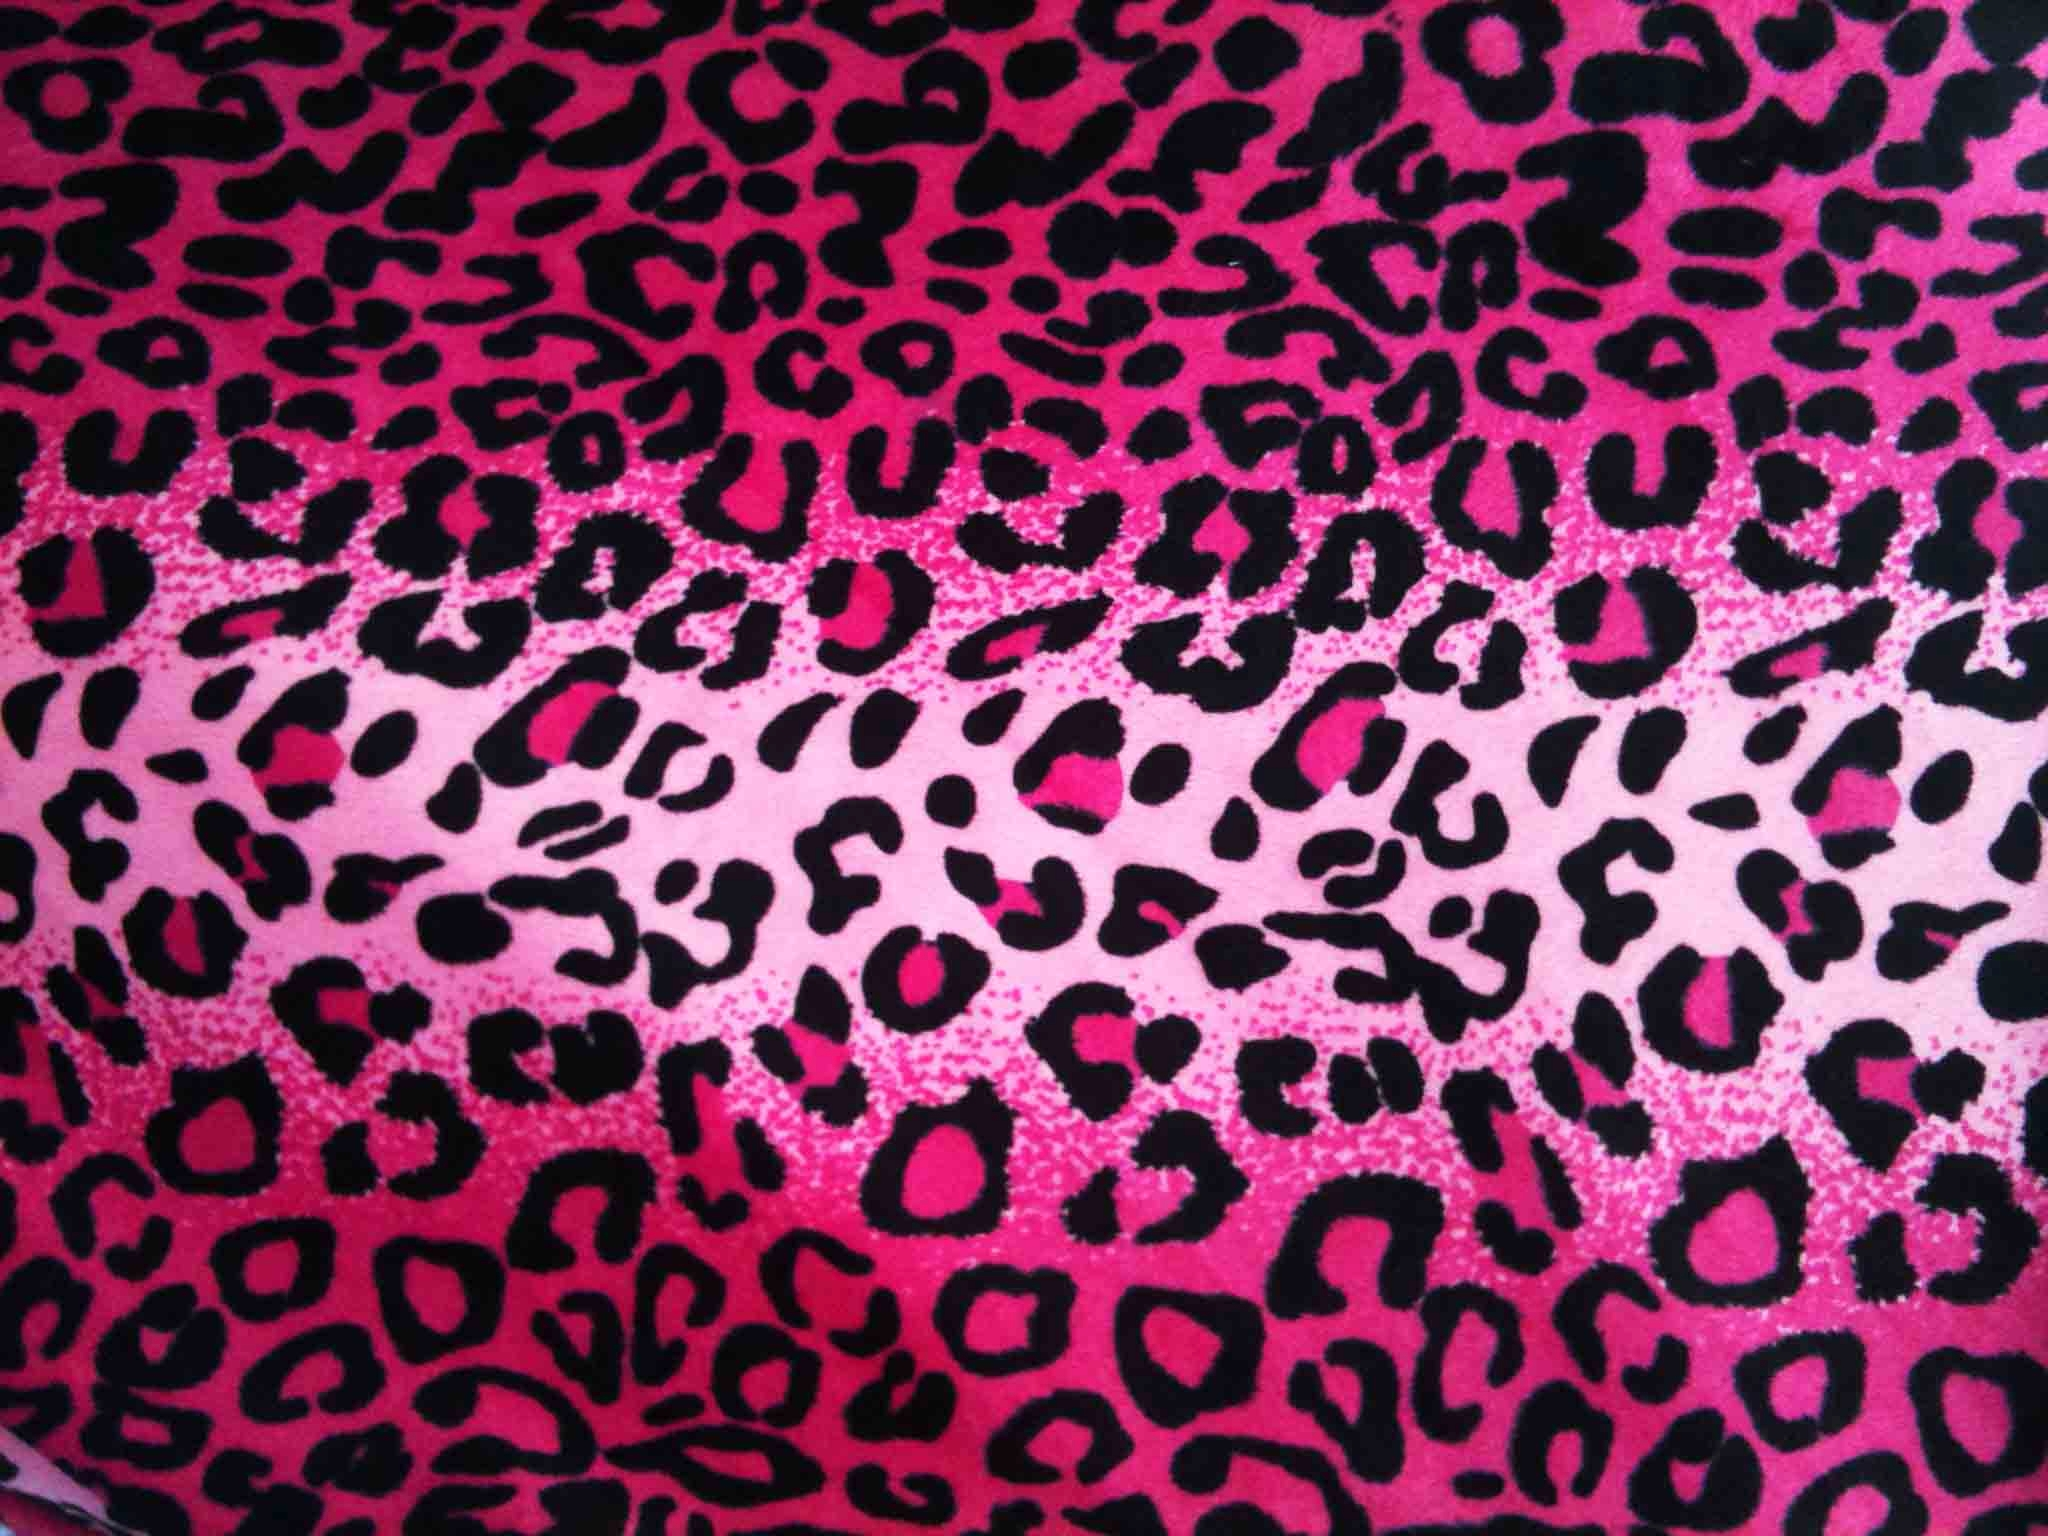 Pink And White Cheetah Wallpaper Images & Pictures - Becuo